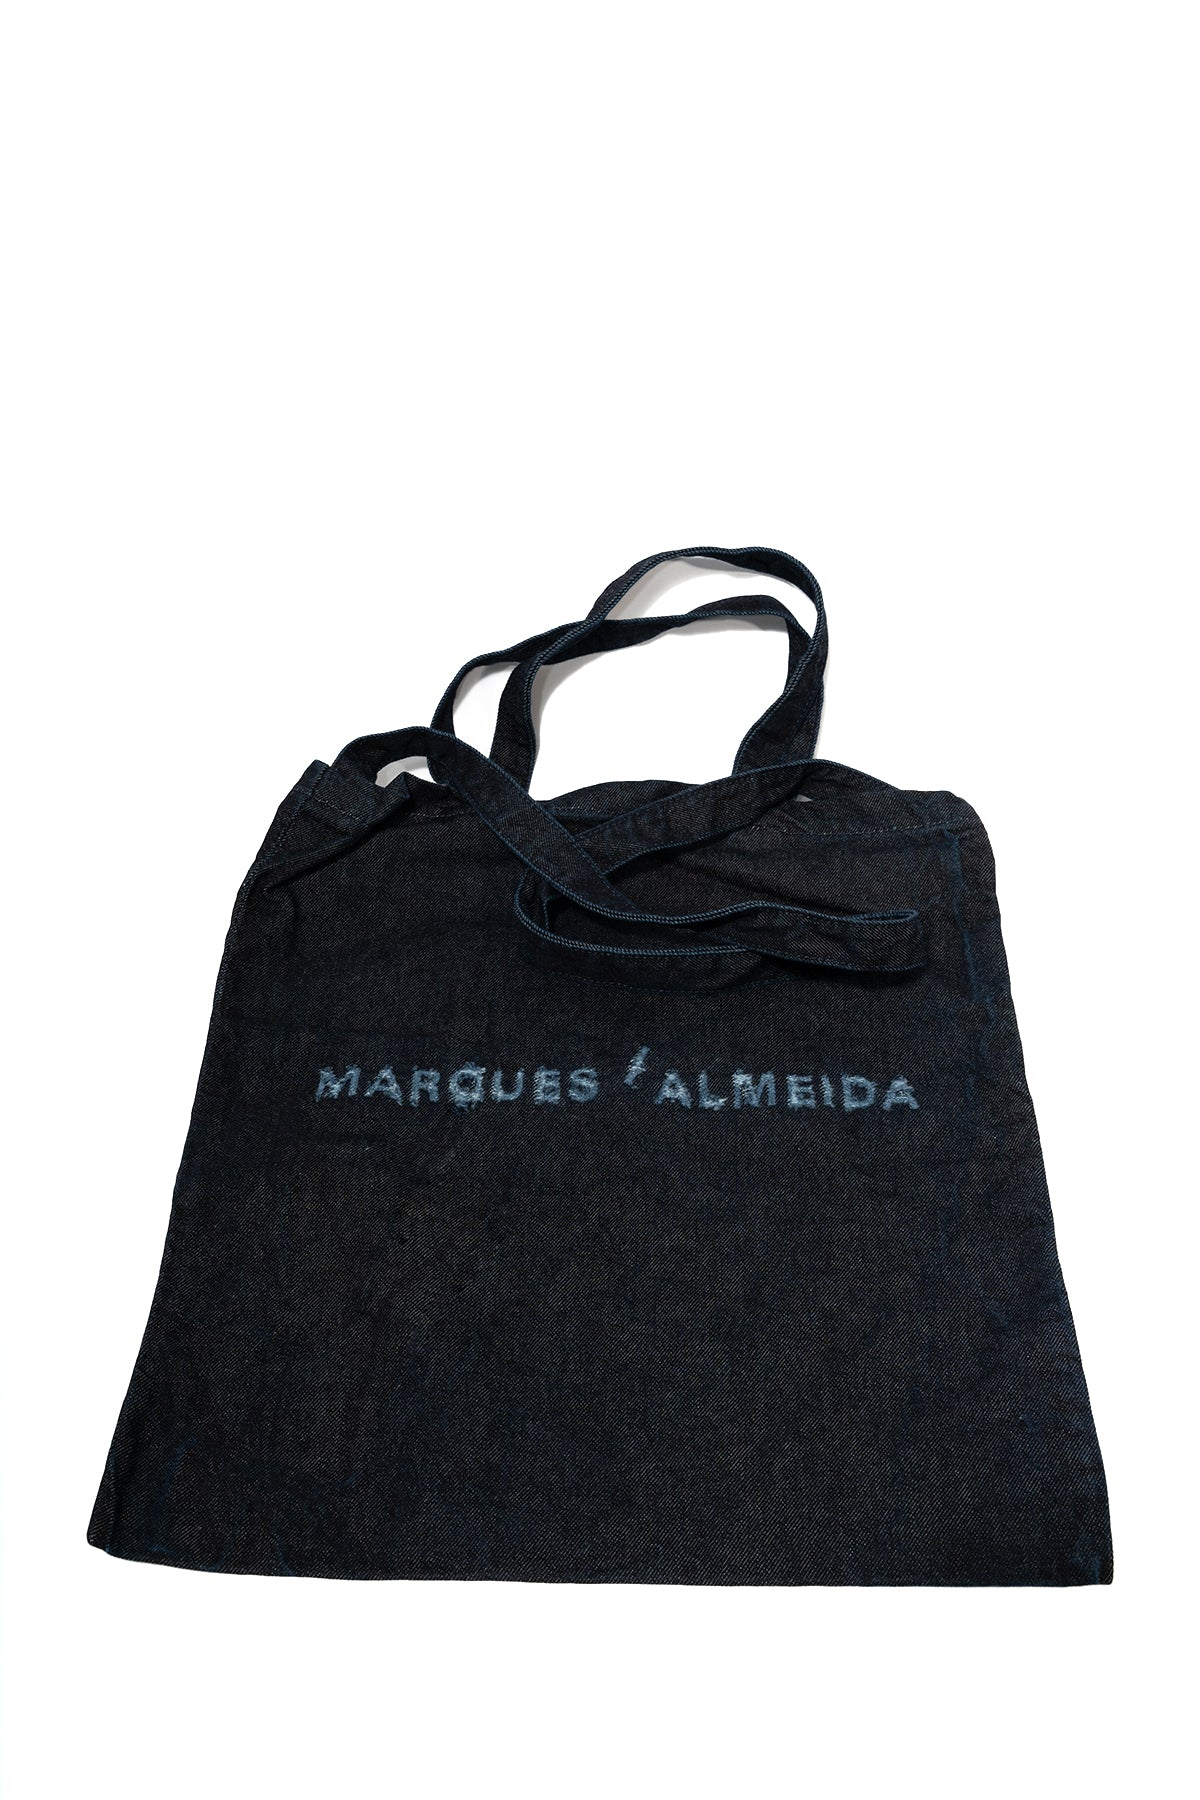 marques almeida DENIM BAG